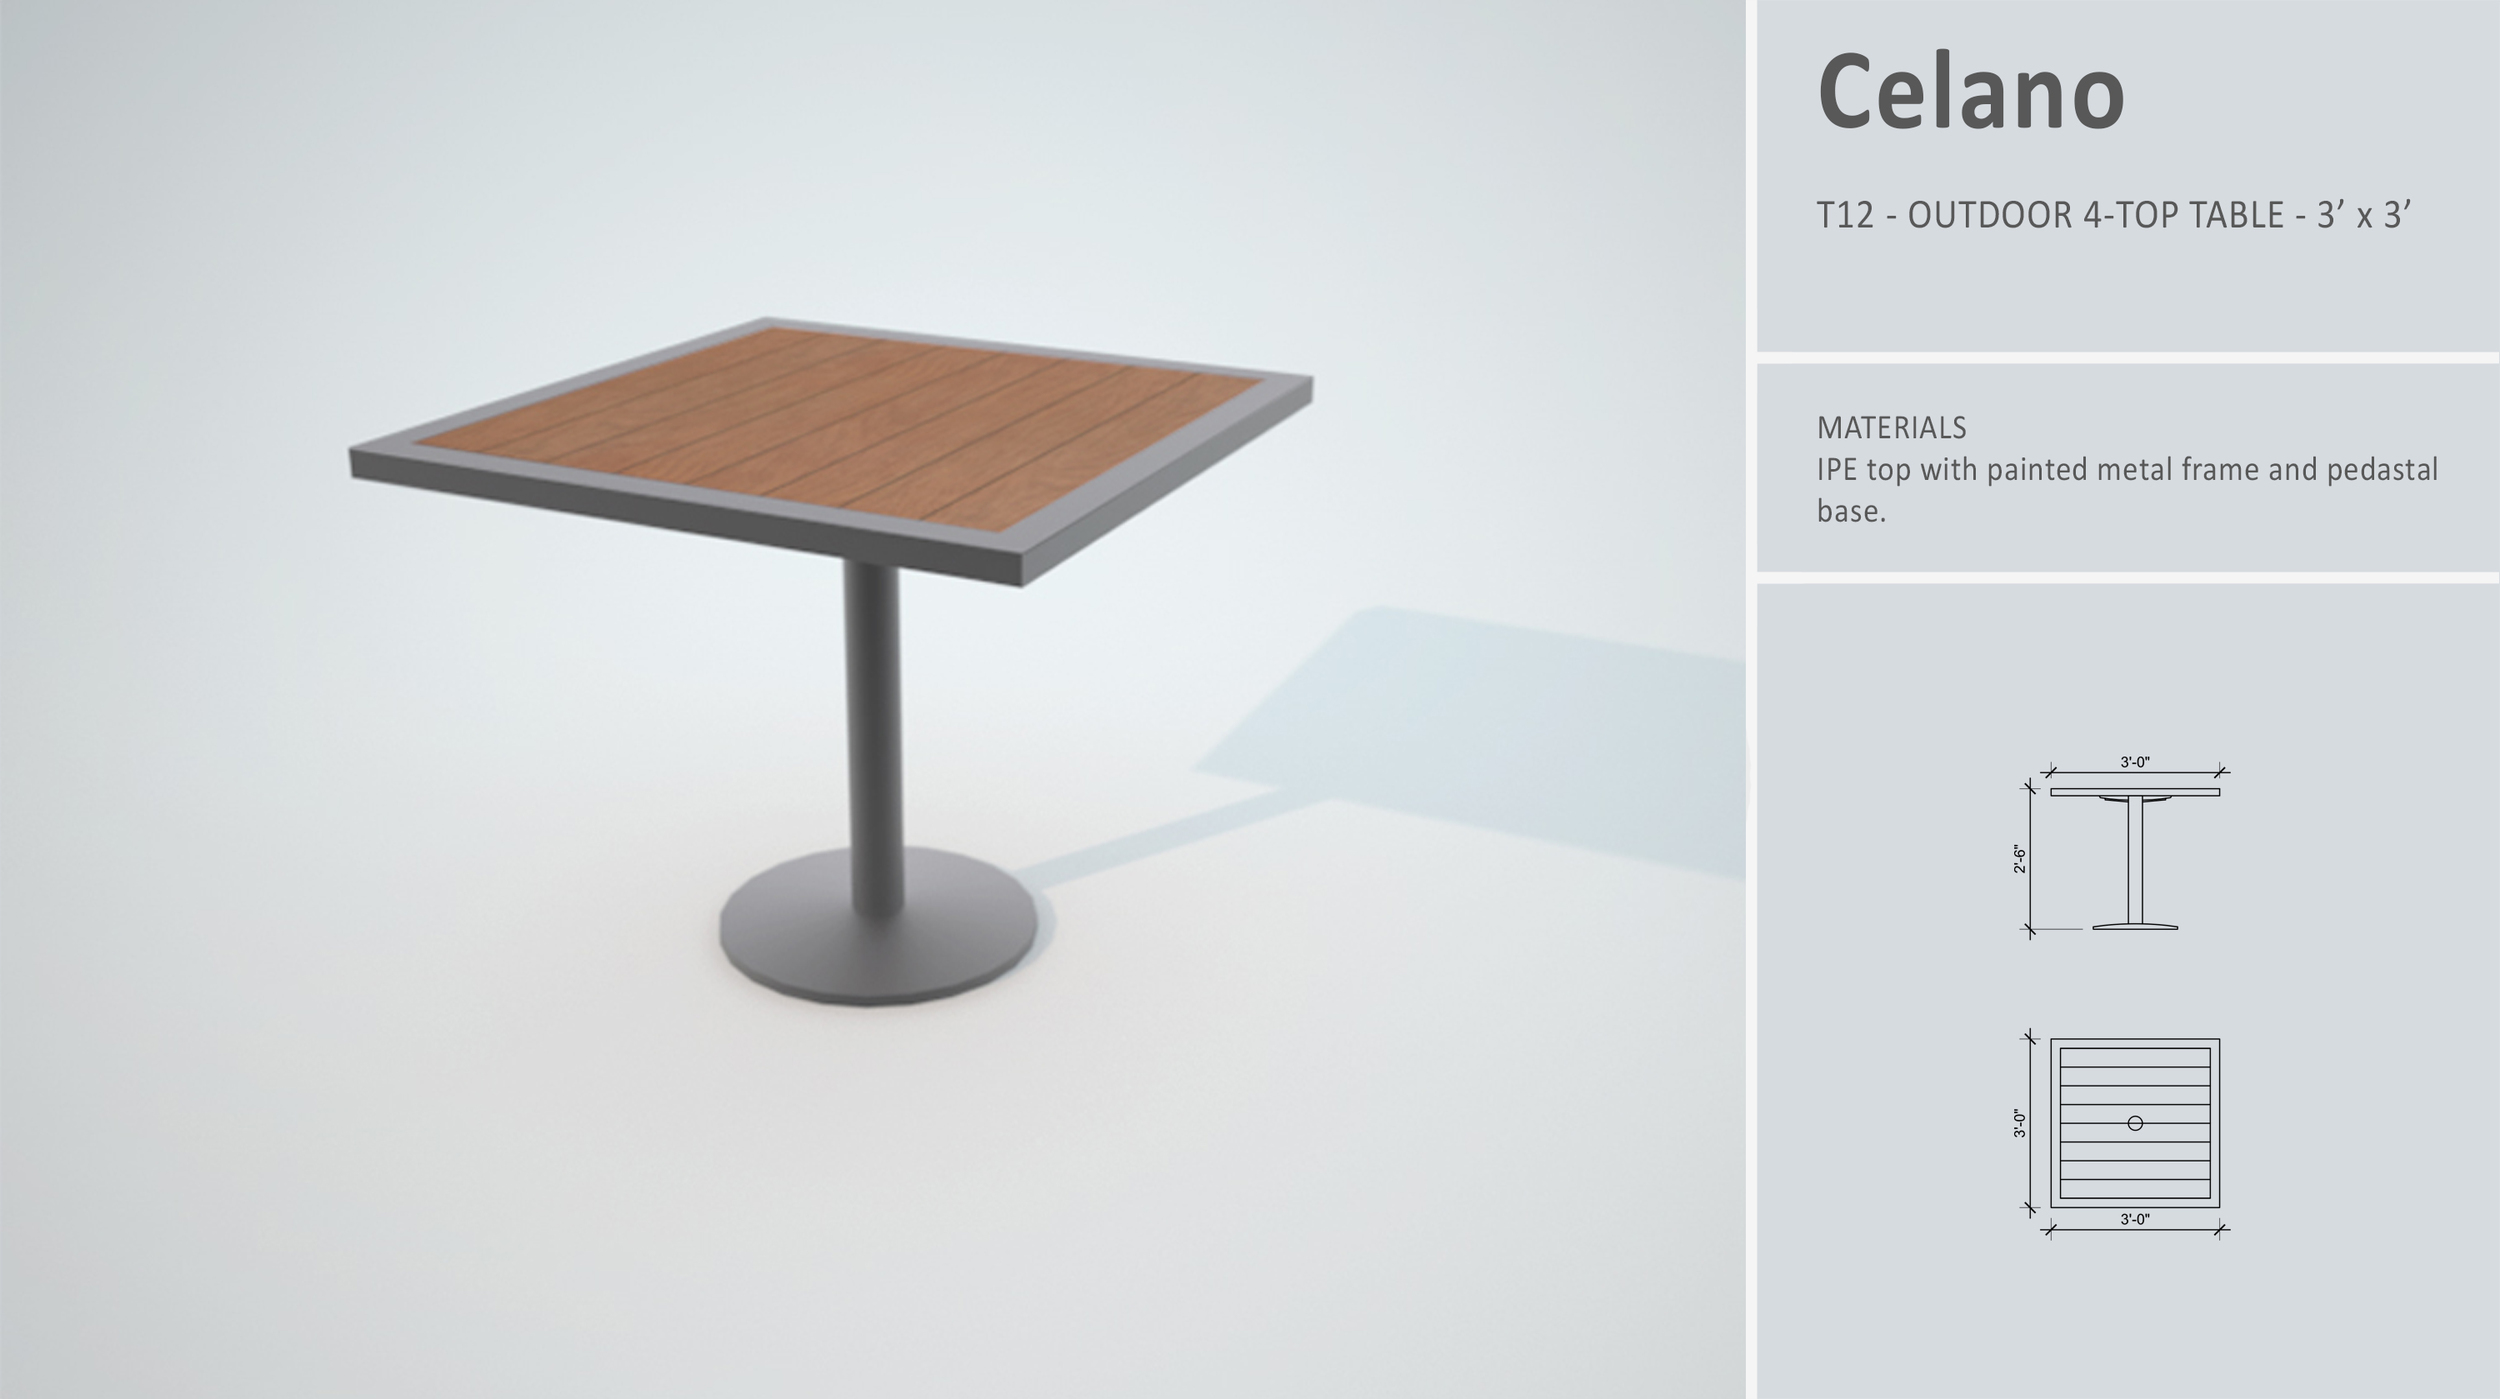 TECHNICAL SHEET TABLE T12 - CELANO.jpg